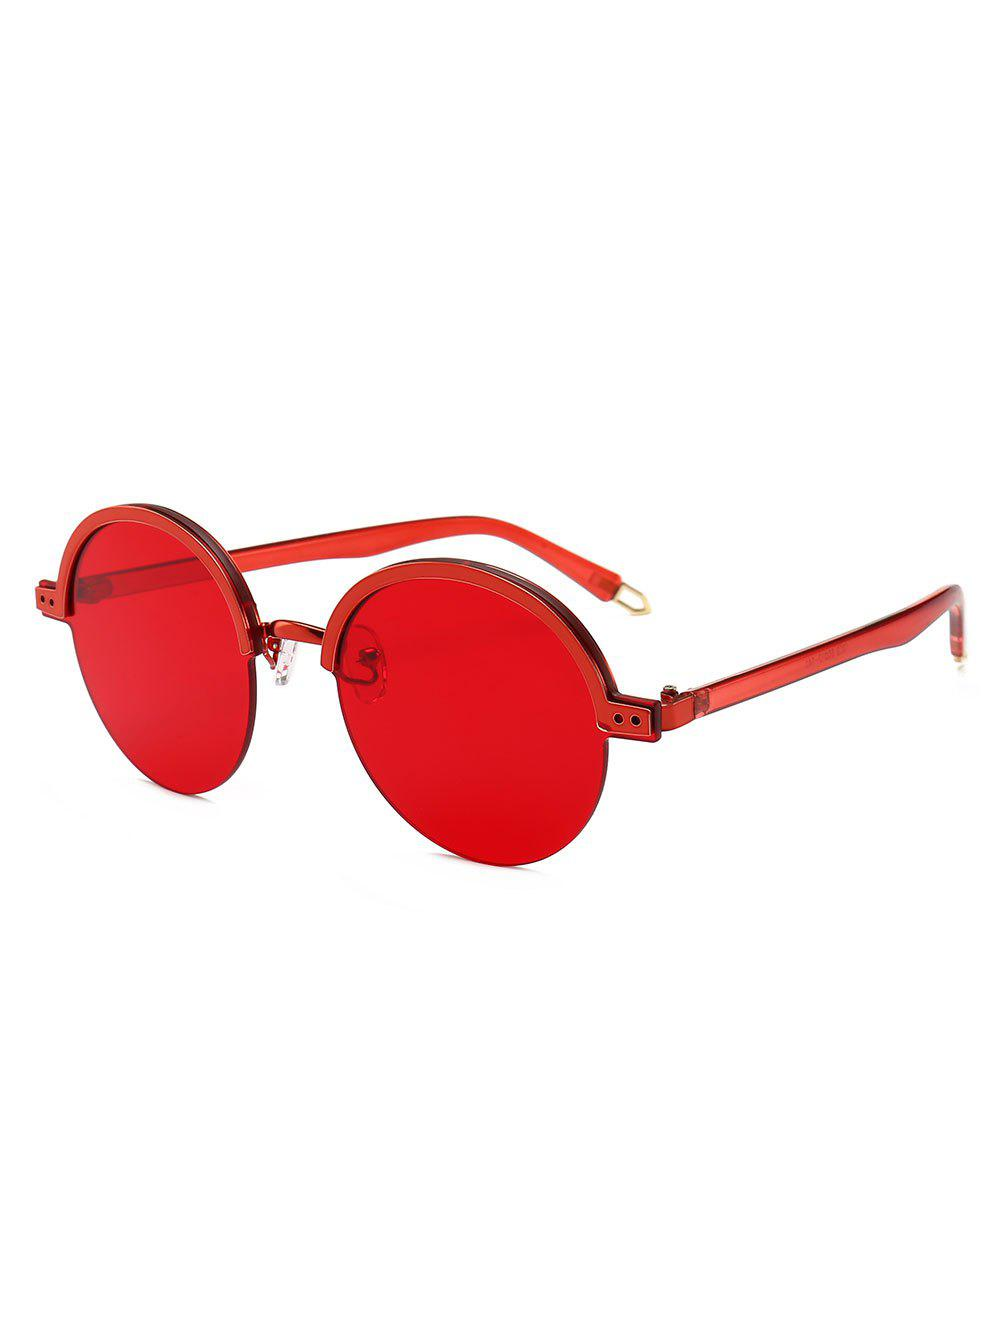 Vintage Hollow Out Leg Semi-Rimless Sunglasses, Red